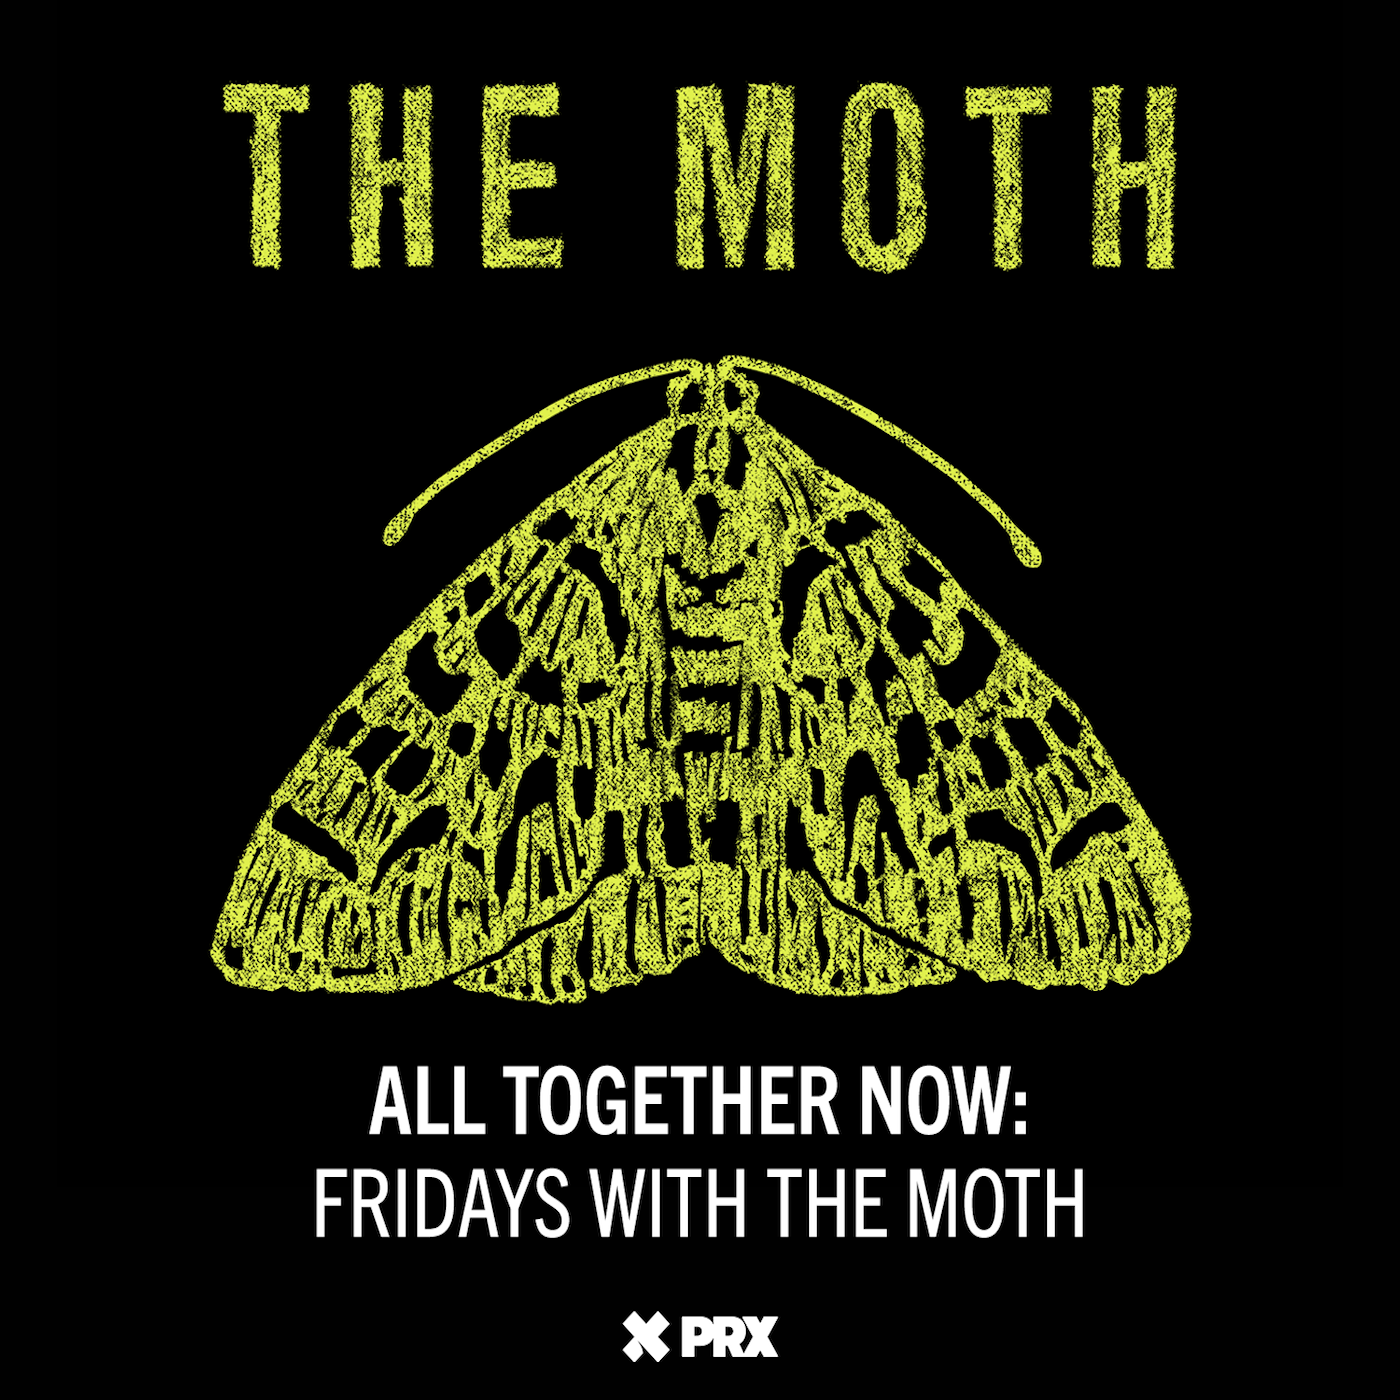 All Together Now: Fridays with The Moth - Anthony Brinkley